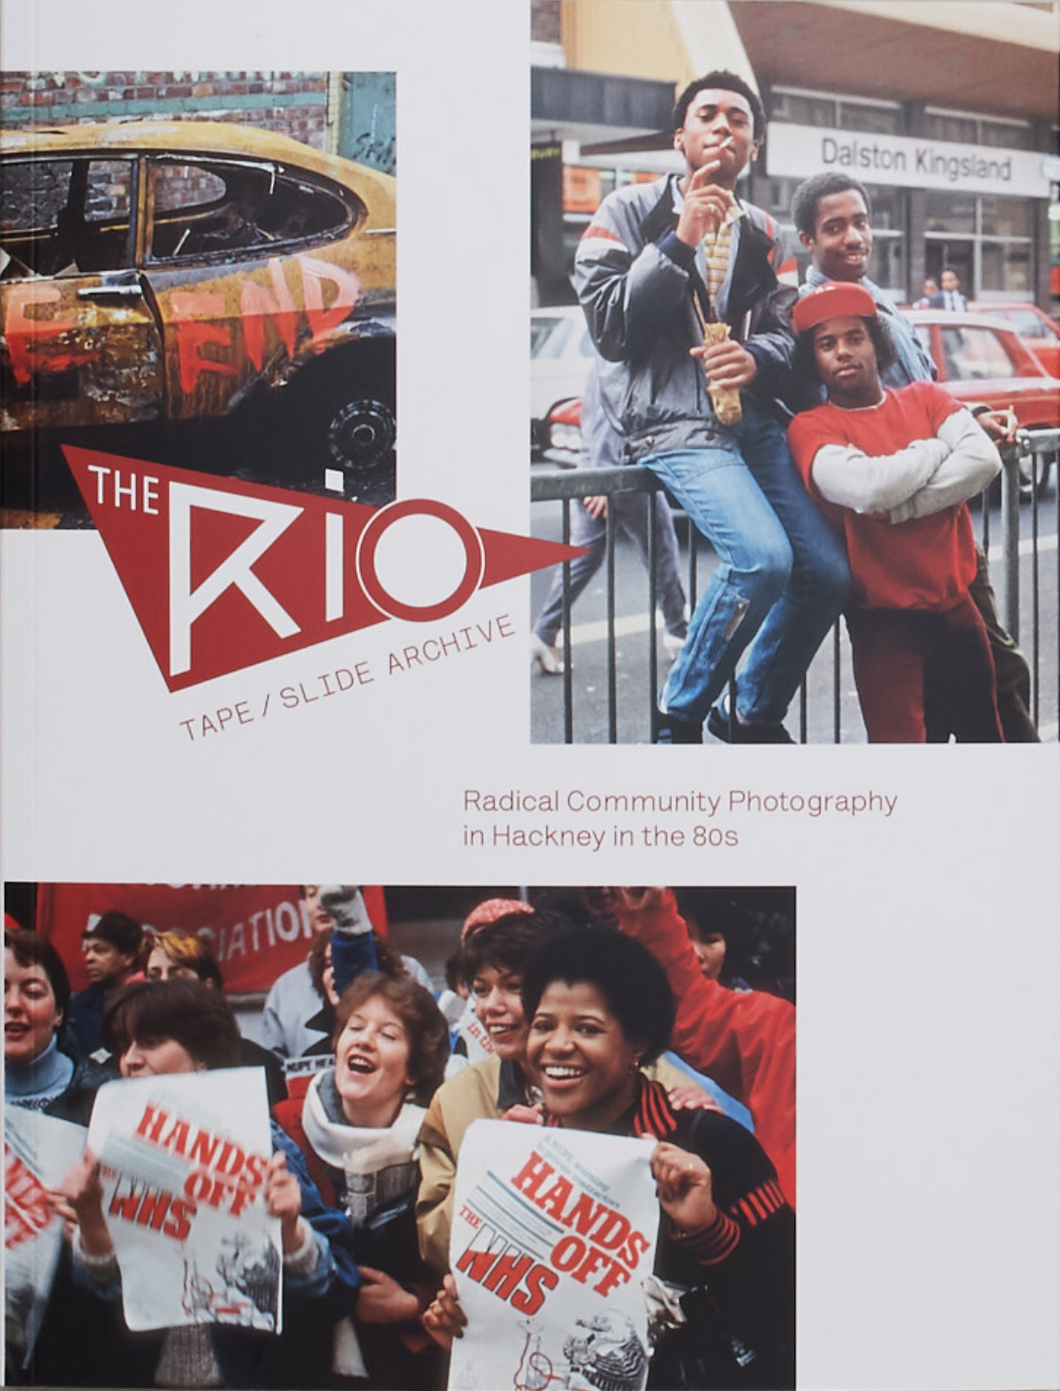 The Rio Tape/Slide Archive: Radical community photography in Hackney in the 80s